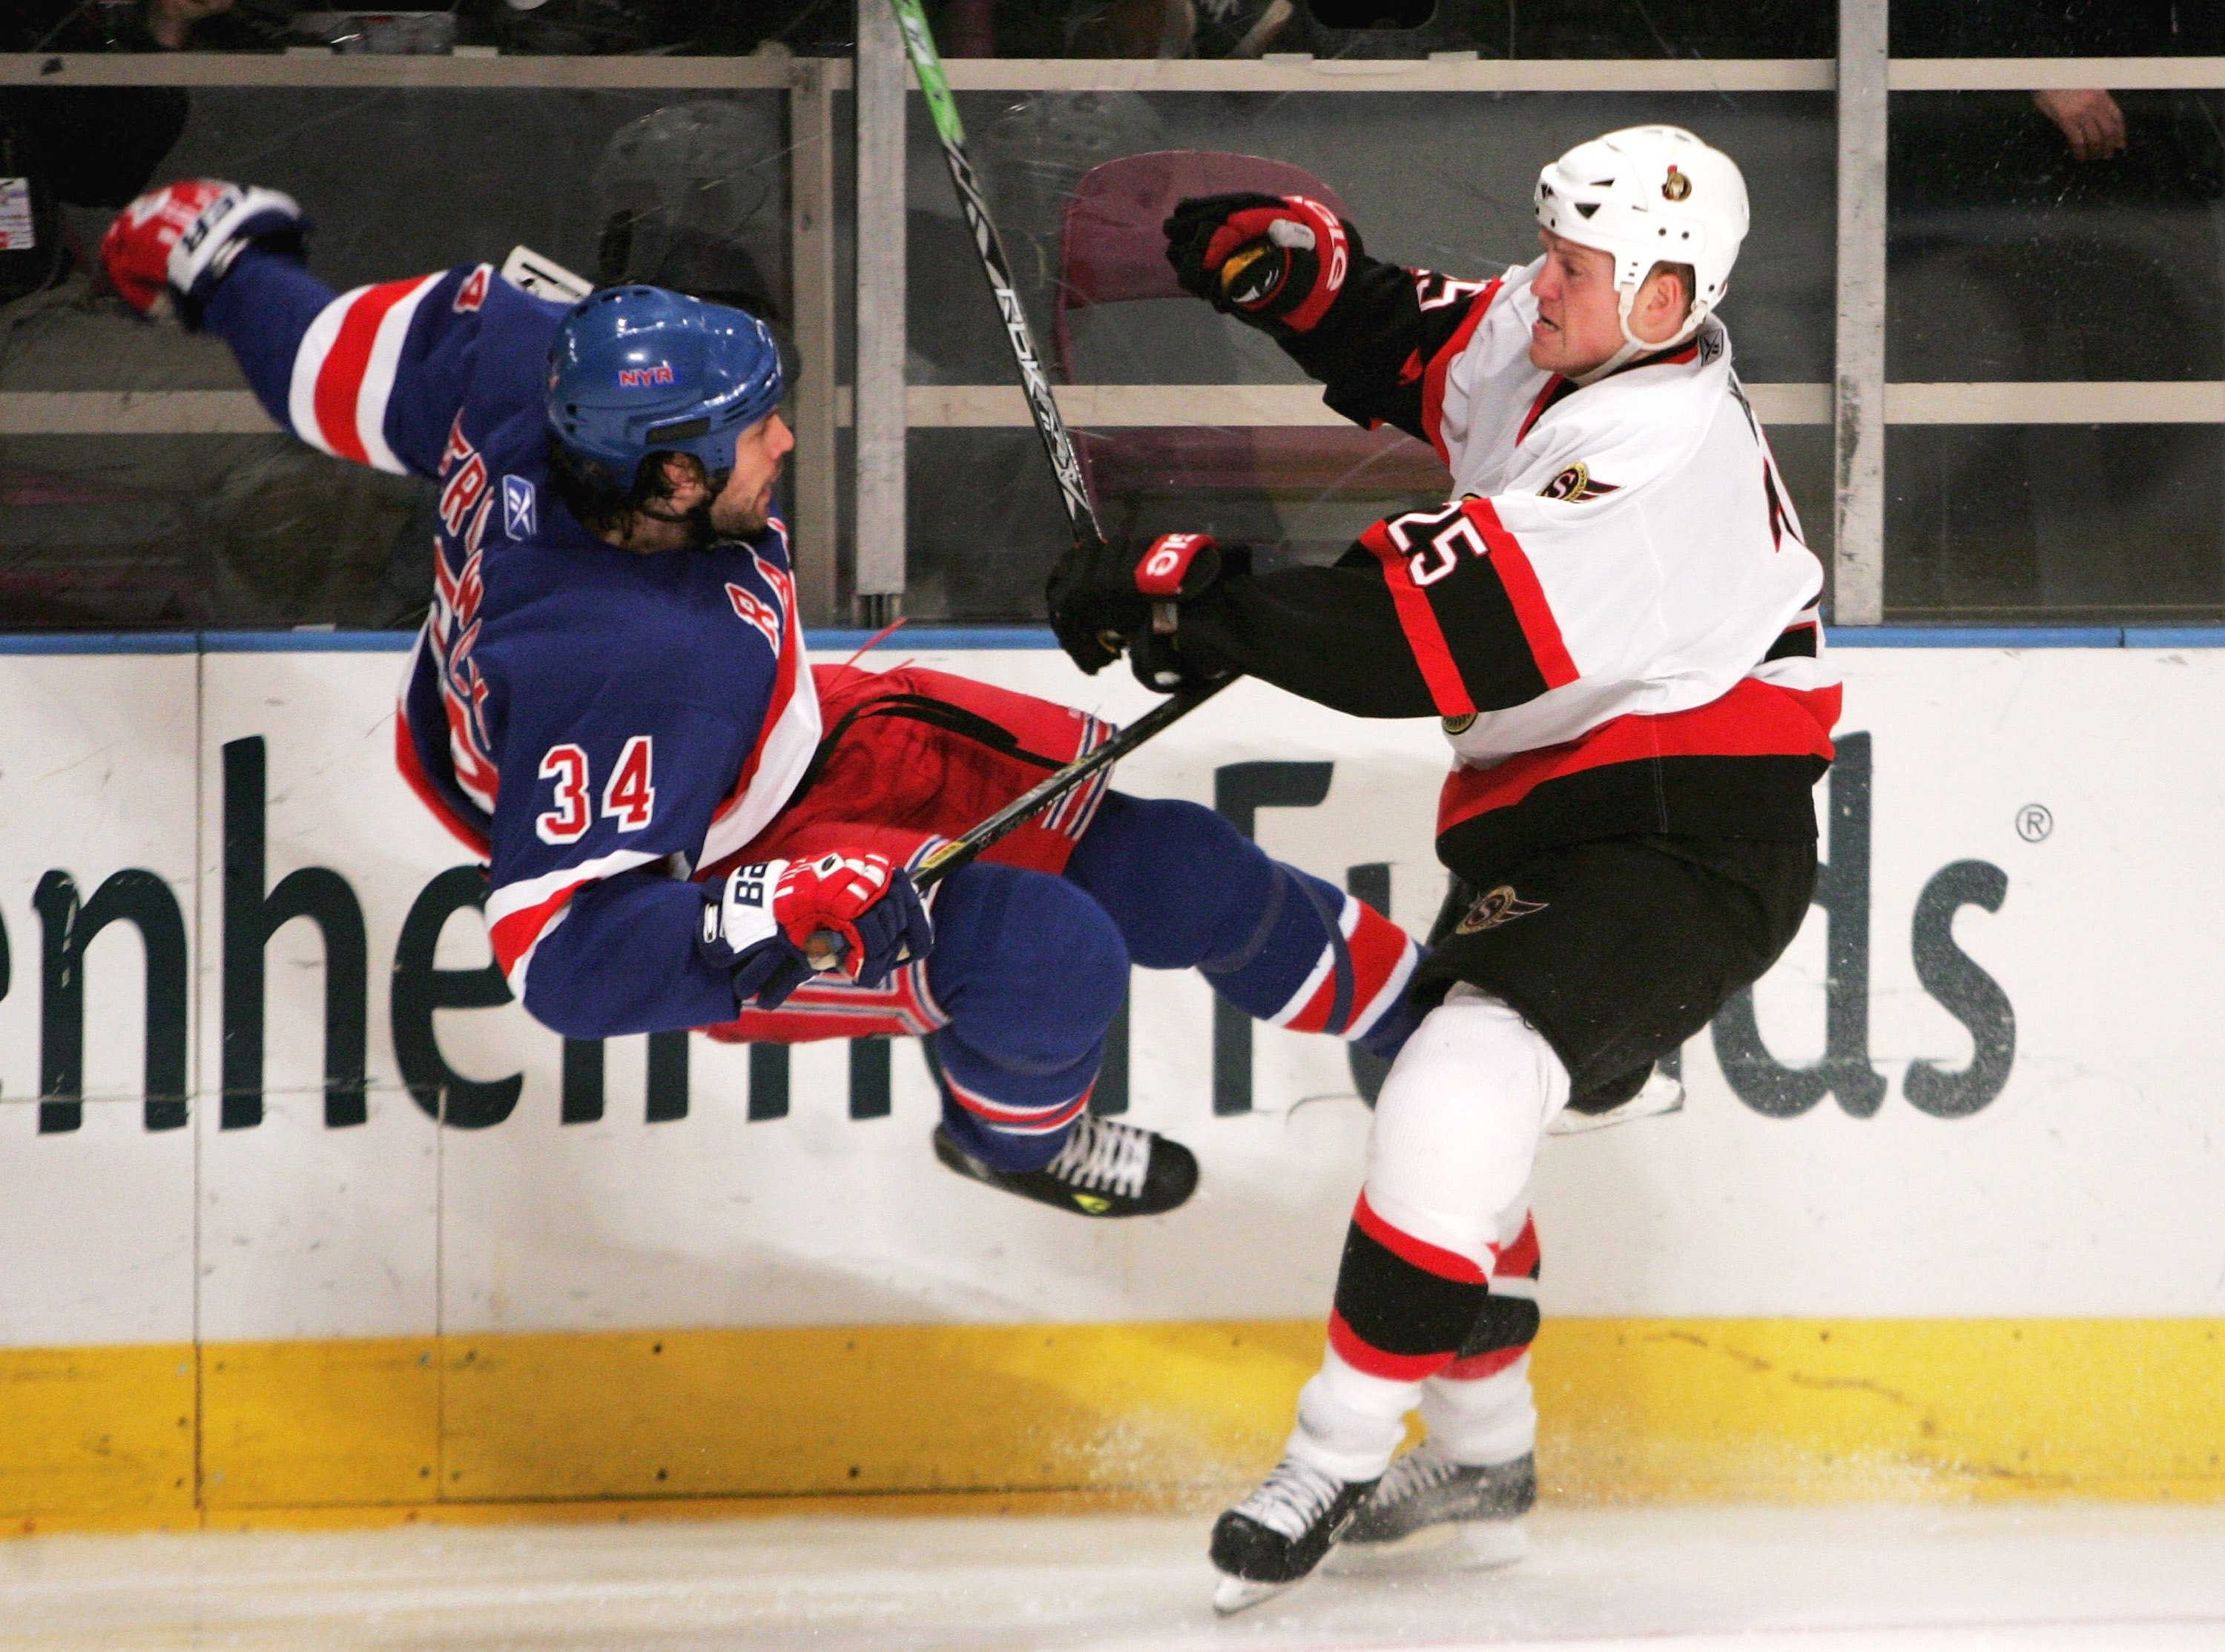 NEW YORK - APRIL 18:  Chris Neil #25 of the Ottawa Senators hits Jason Strudwick #34 of the New York Rangers on April 18, 2006 at Madison Square Garden in New York City. The Senators defeated the Rangers 5-1.  (Photo by Ezra Shaw/Getty Images)